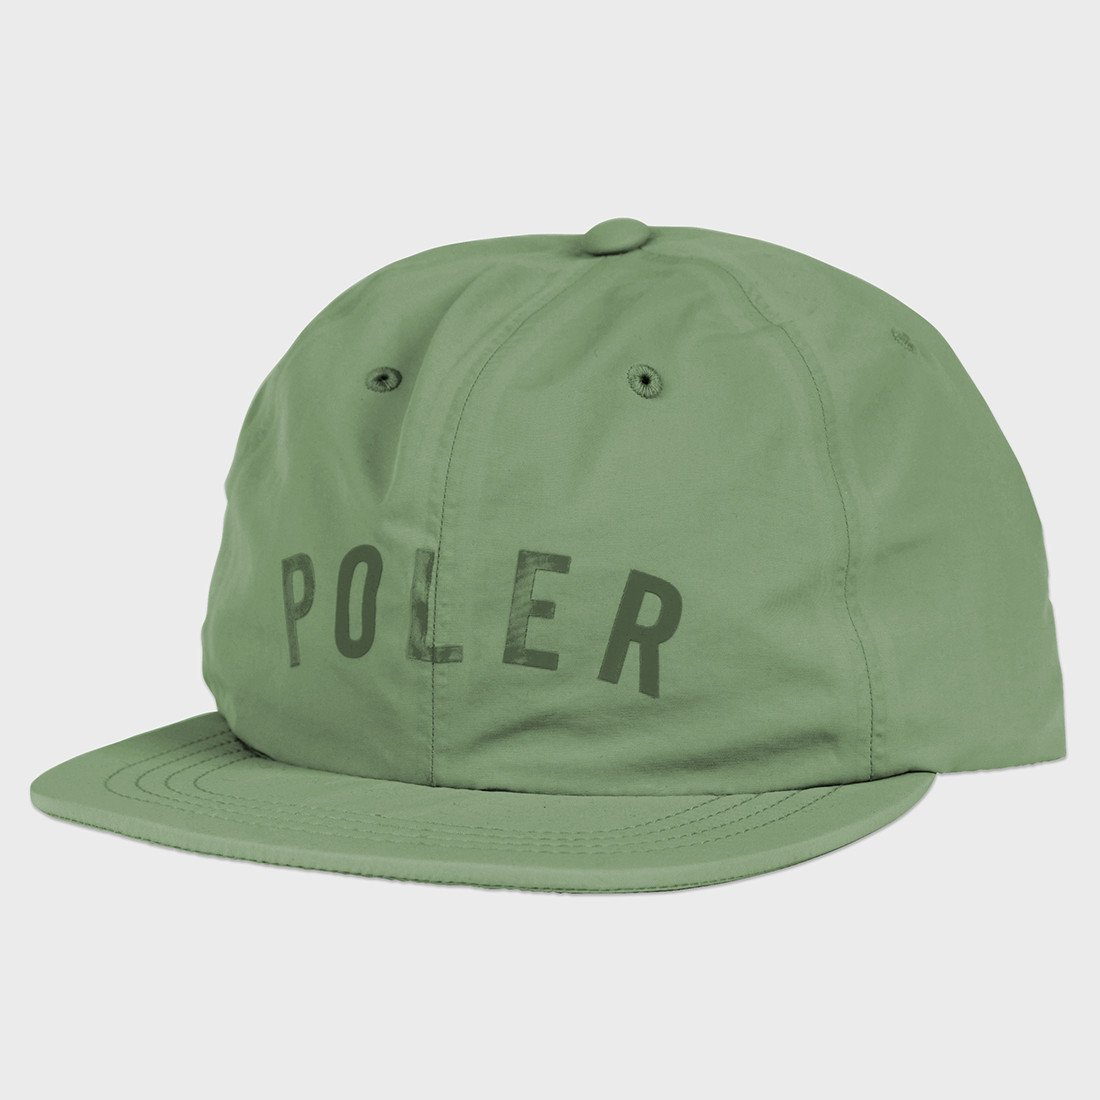 Poler Taped Nylon Hat Floppy Olive